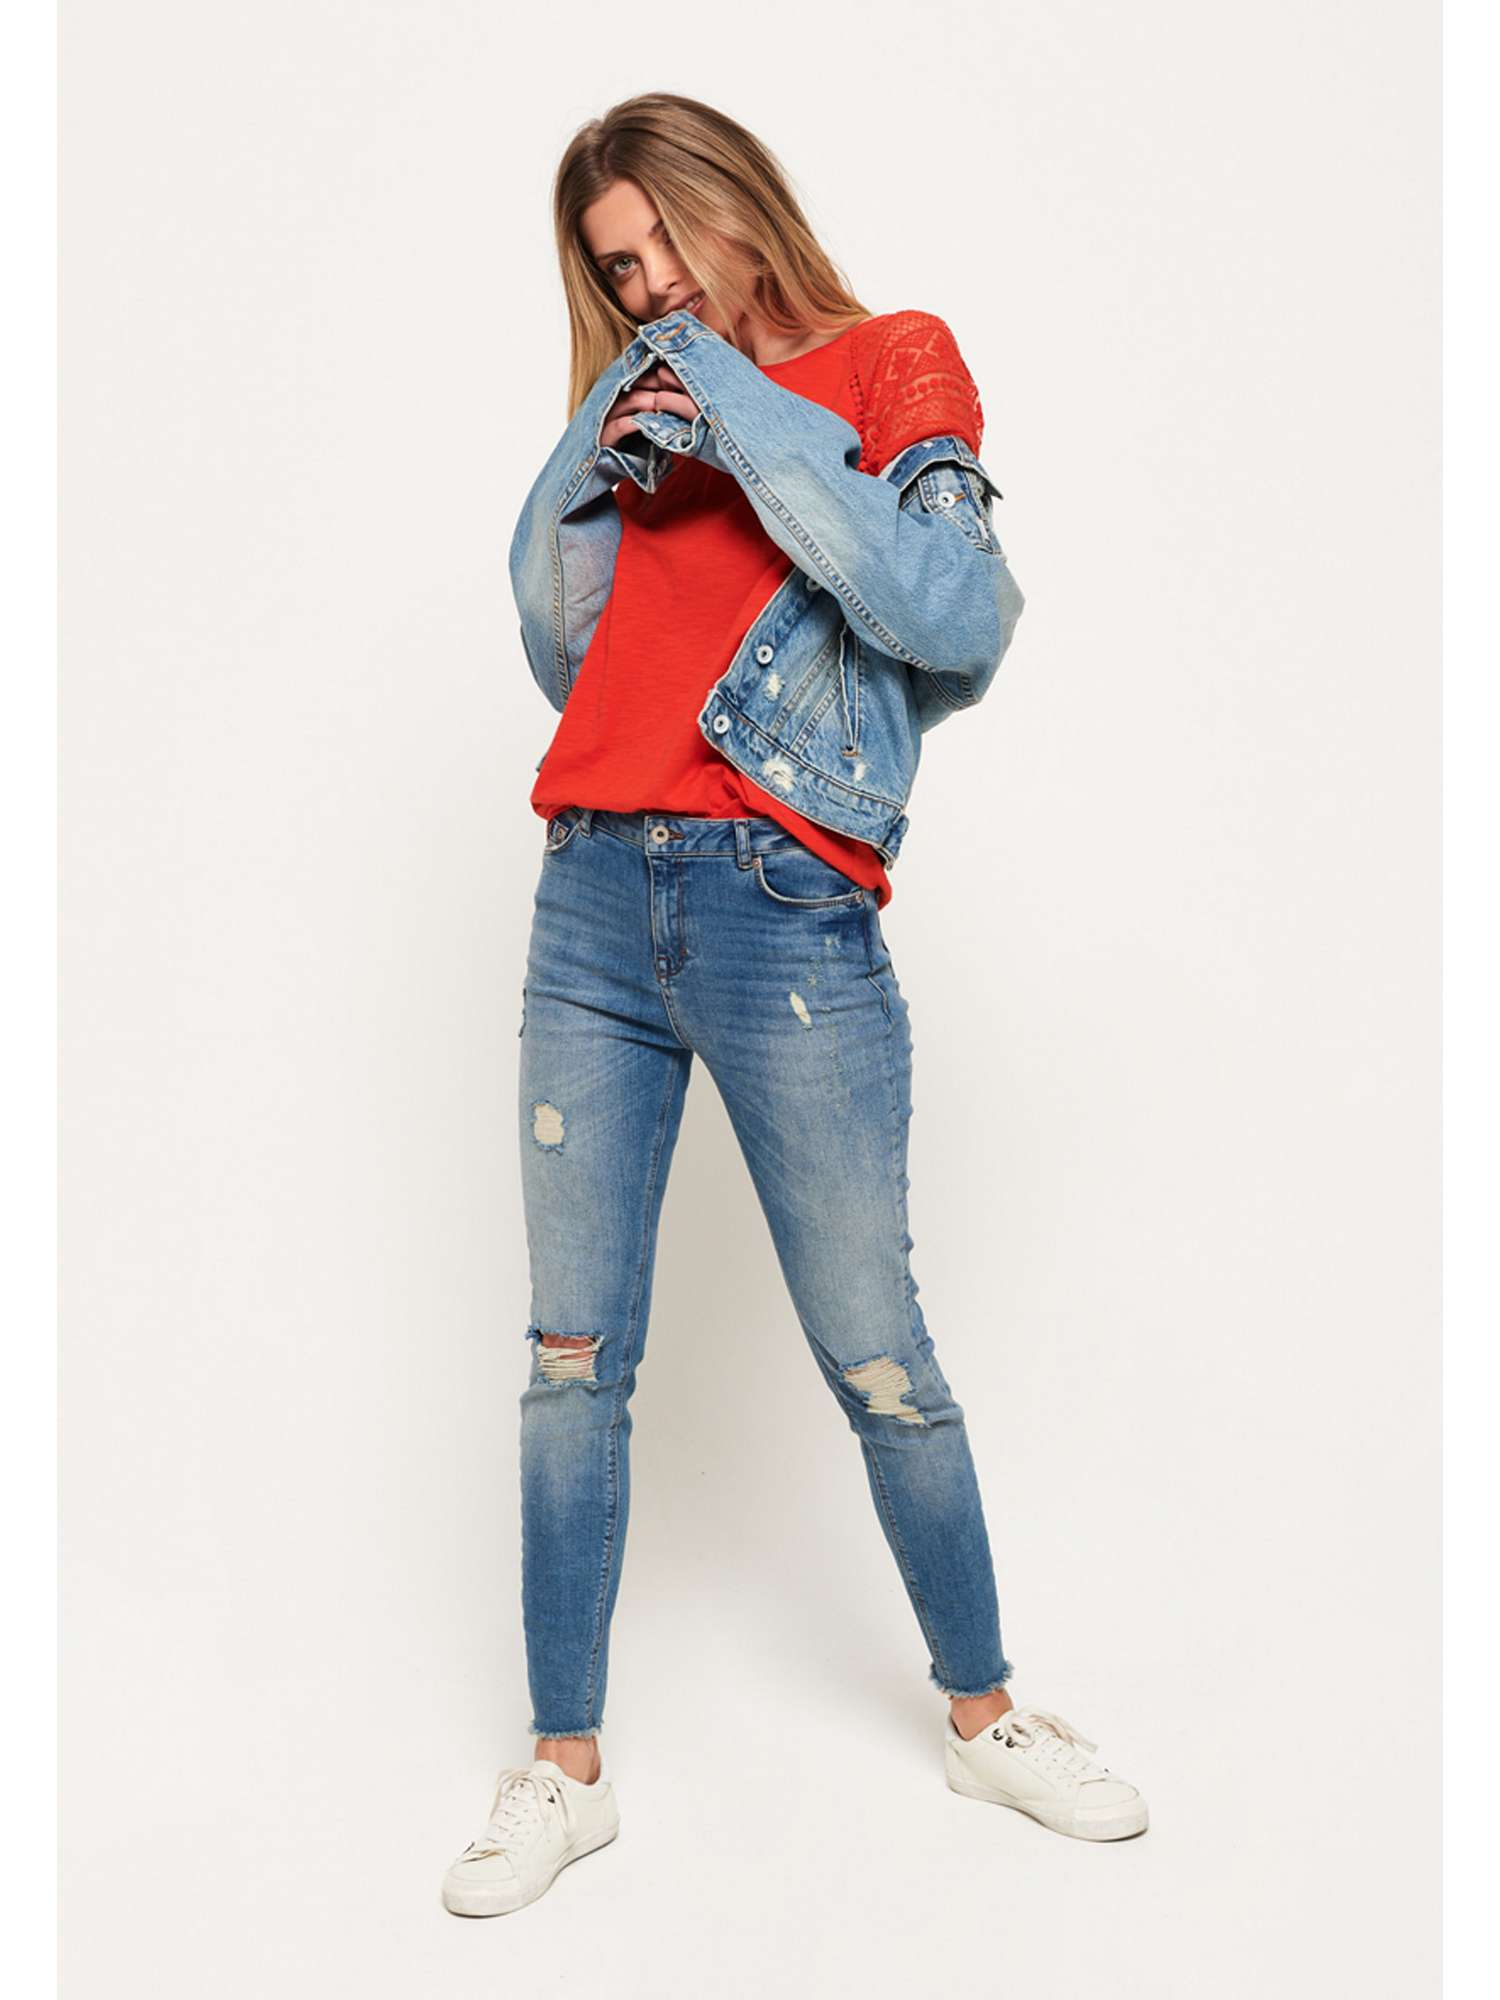 Embroidered Superdry Top Superdry Embroidered Raglan XTgnwPx